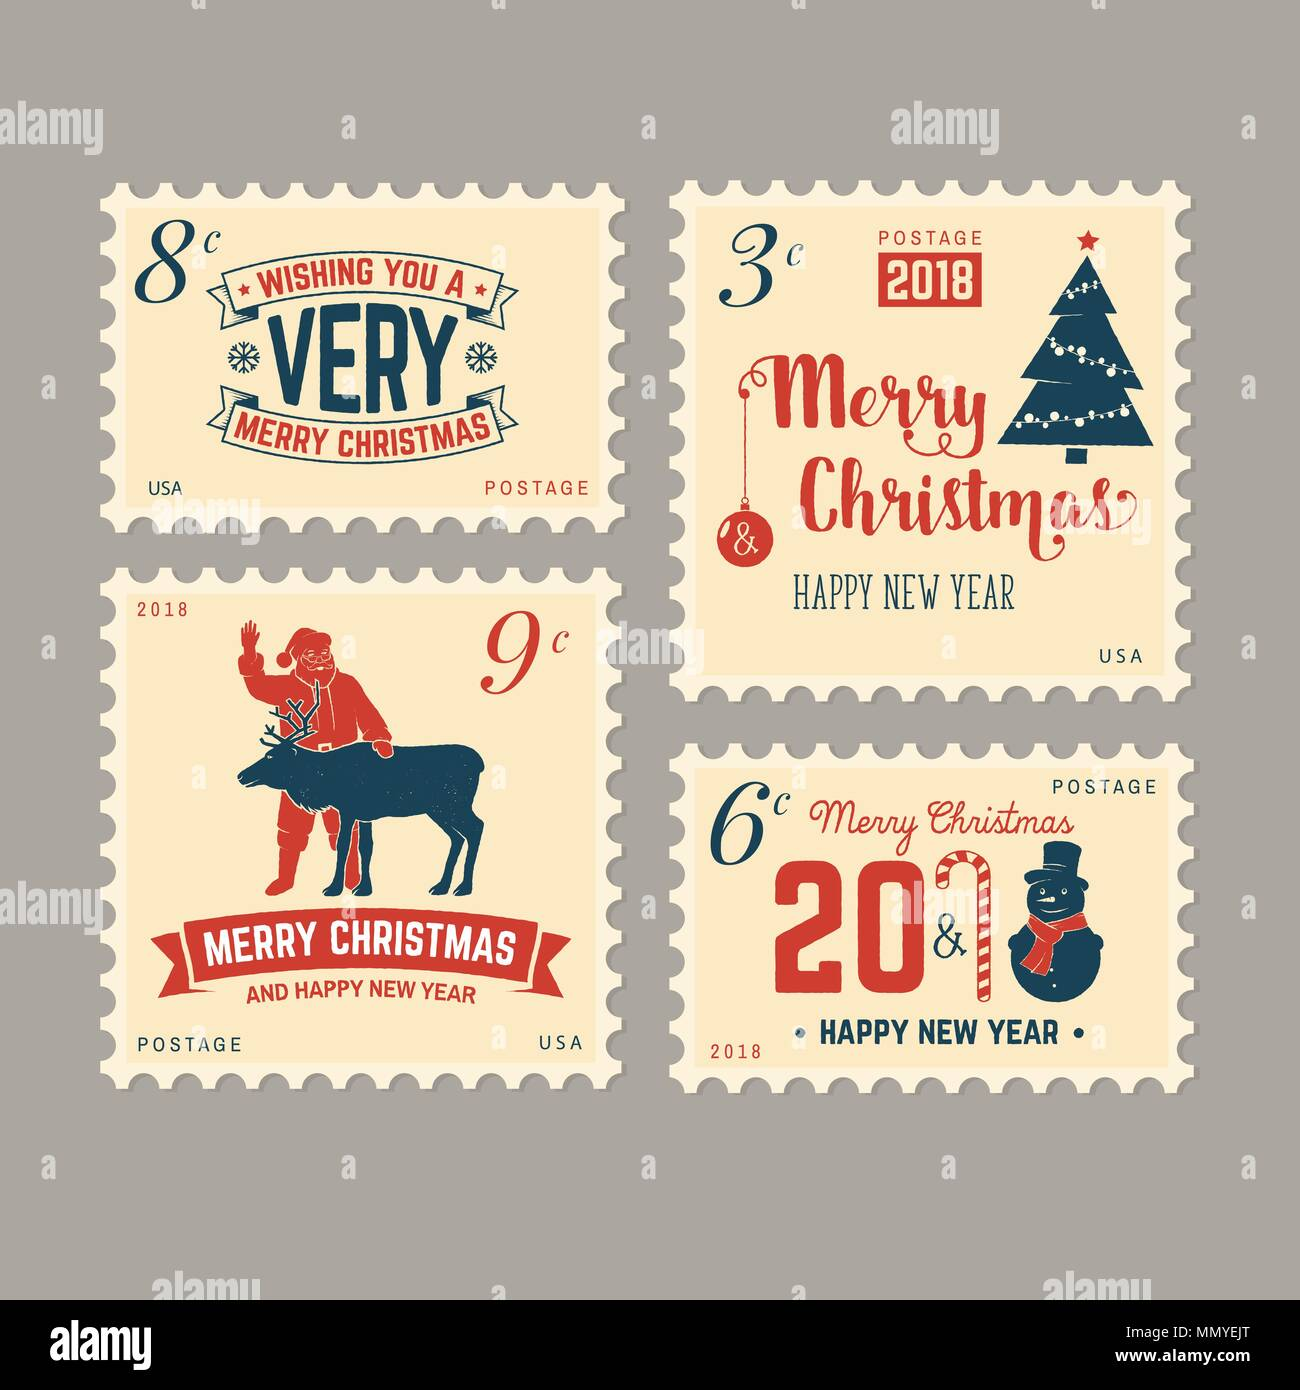 Merry Christmas And Happy New Year 2018 Retro Postage